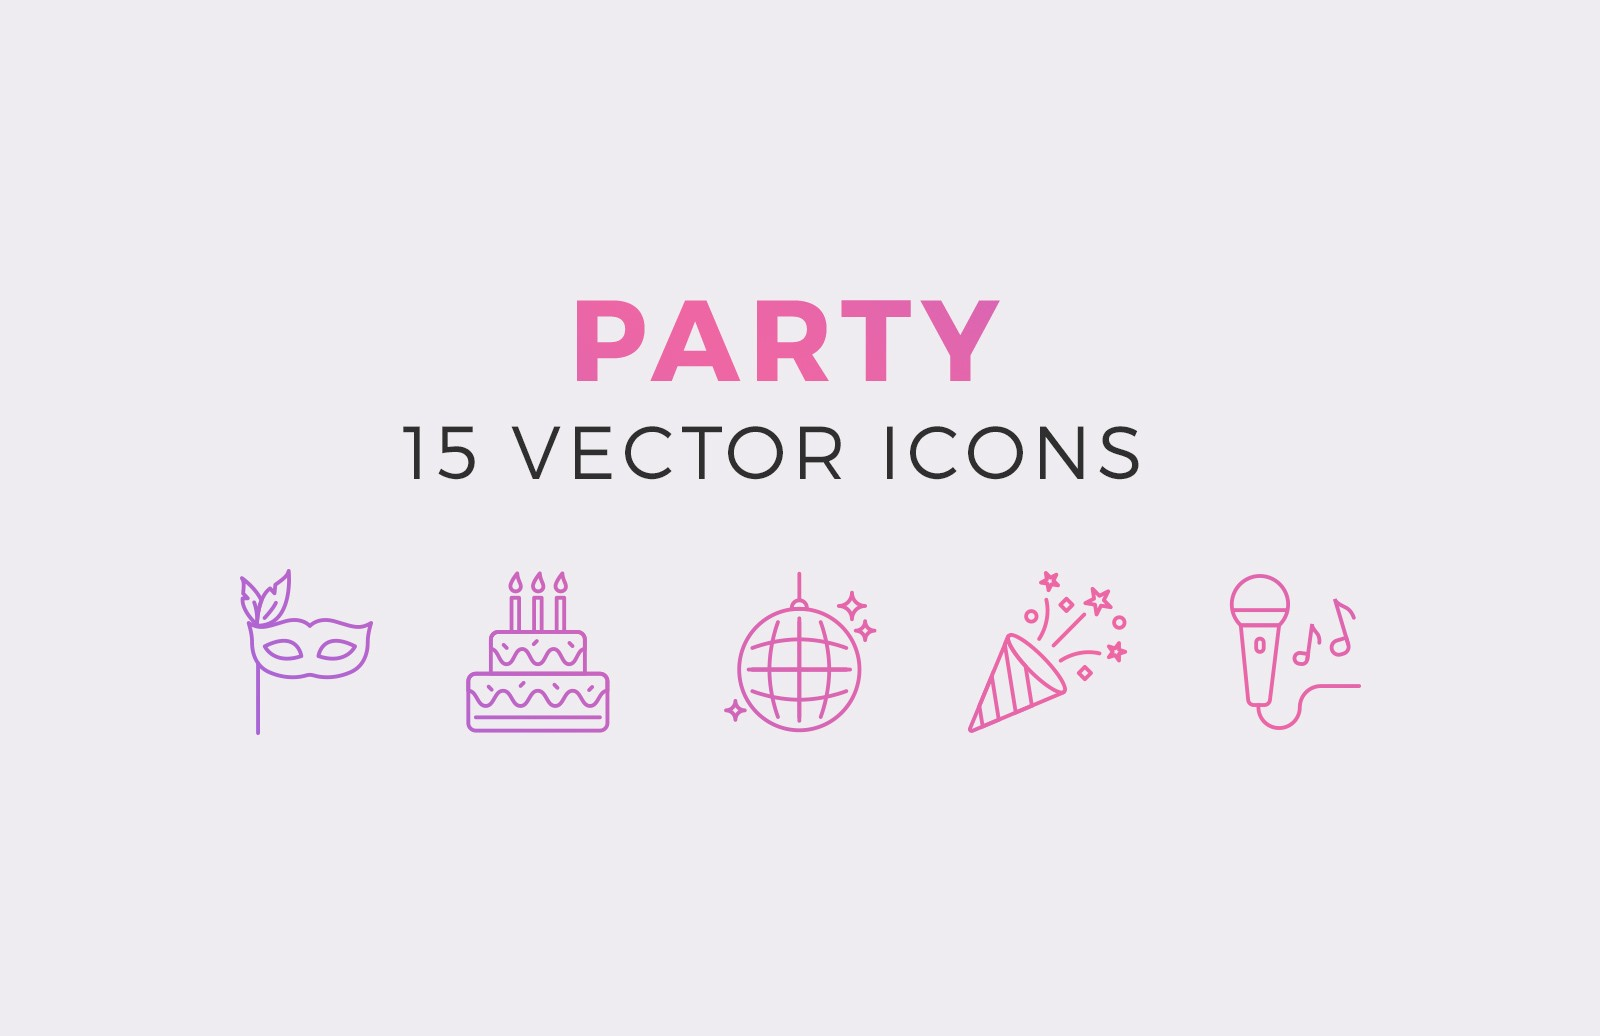 Free Party Vector Icons